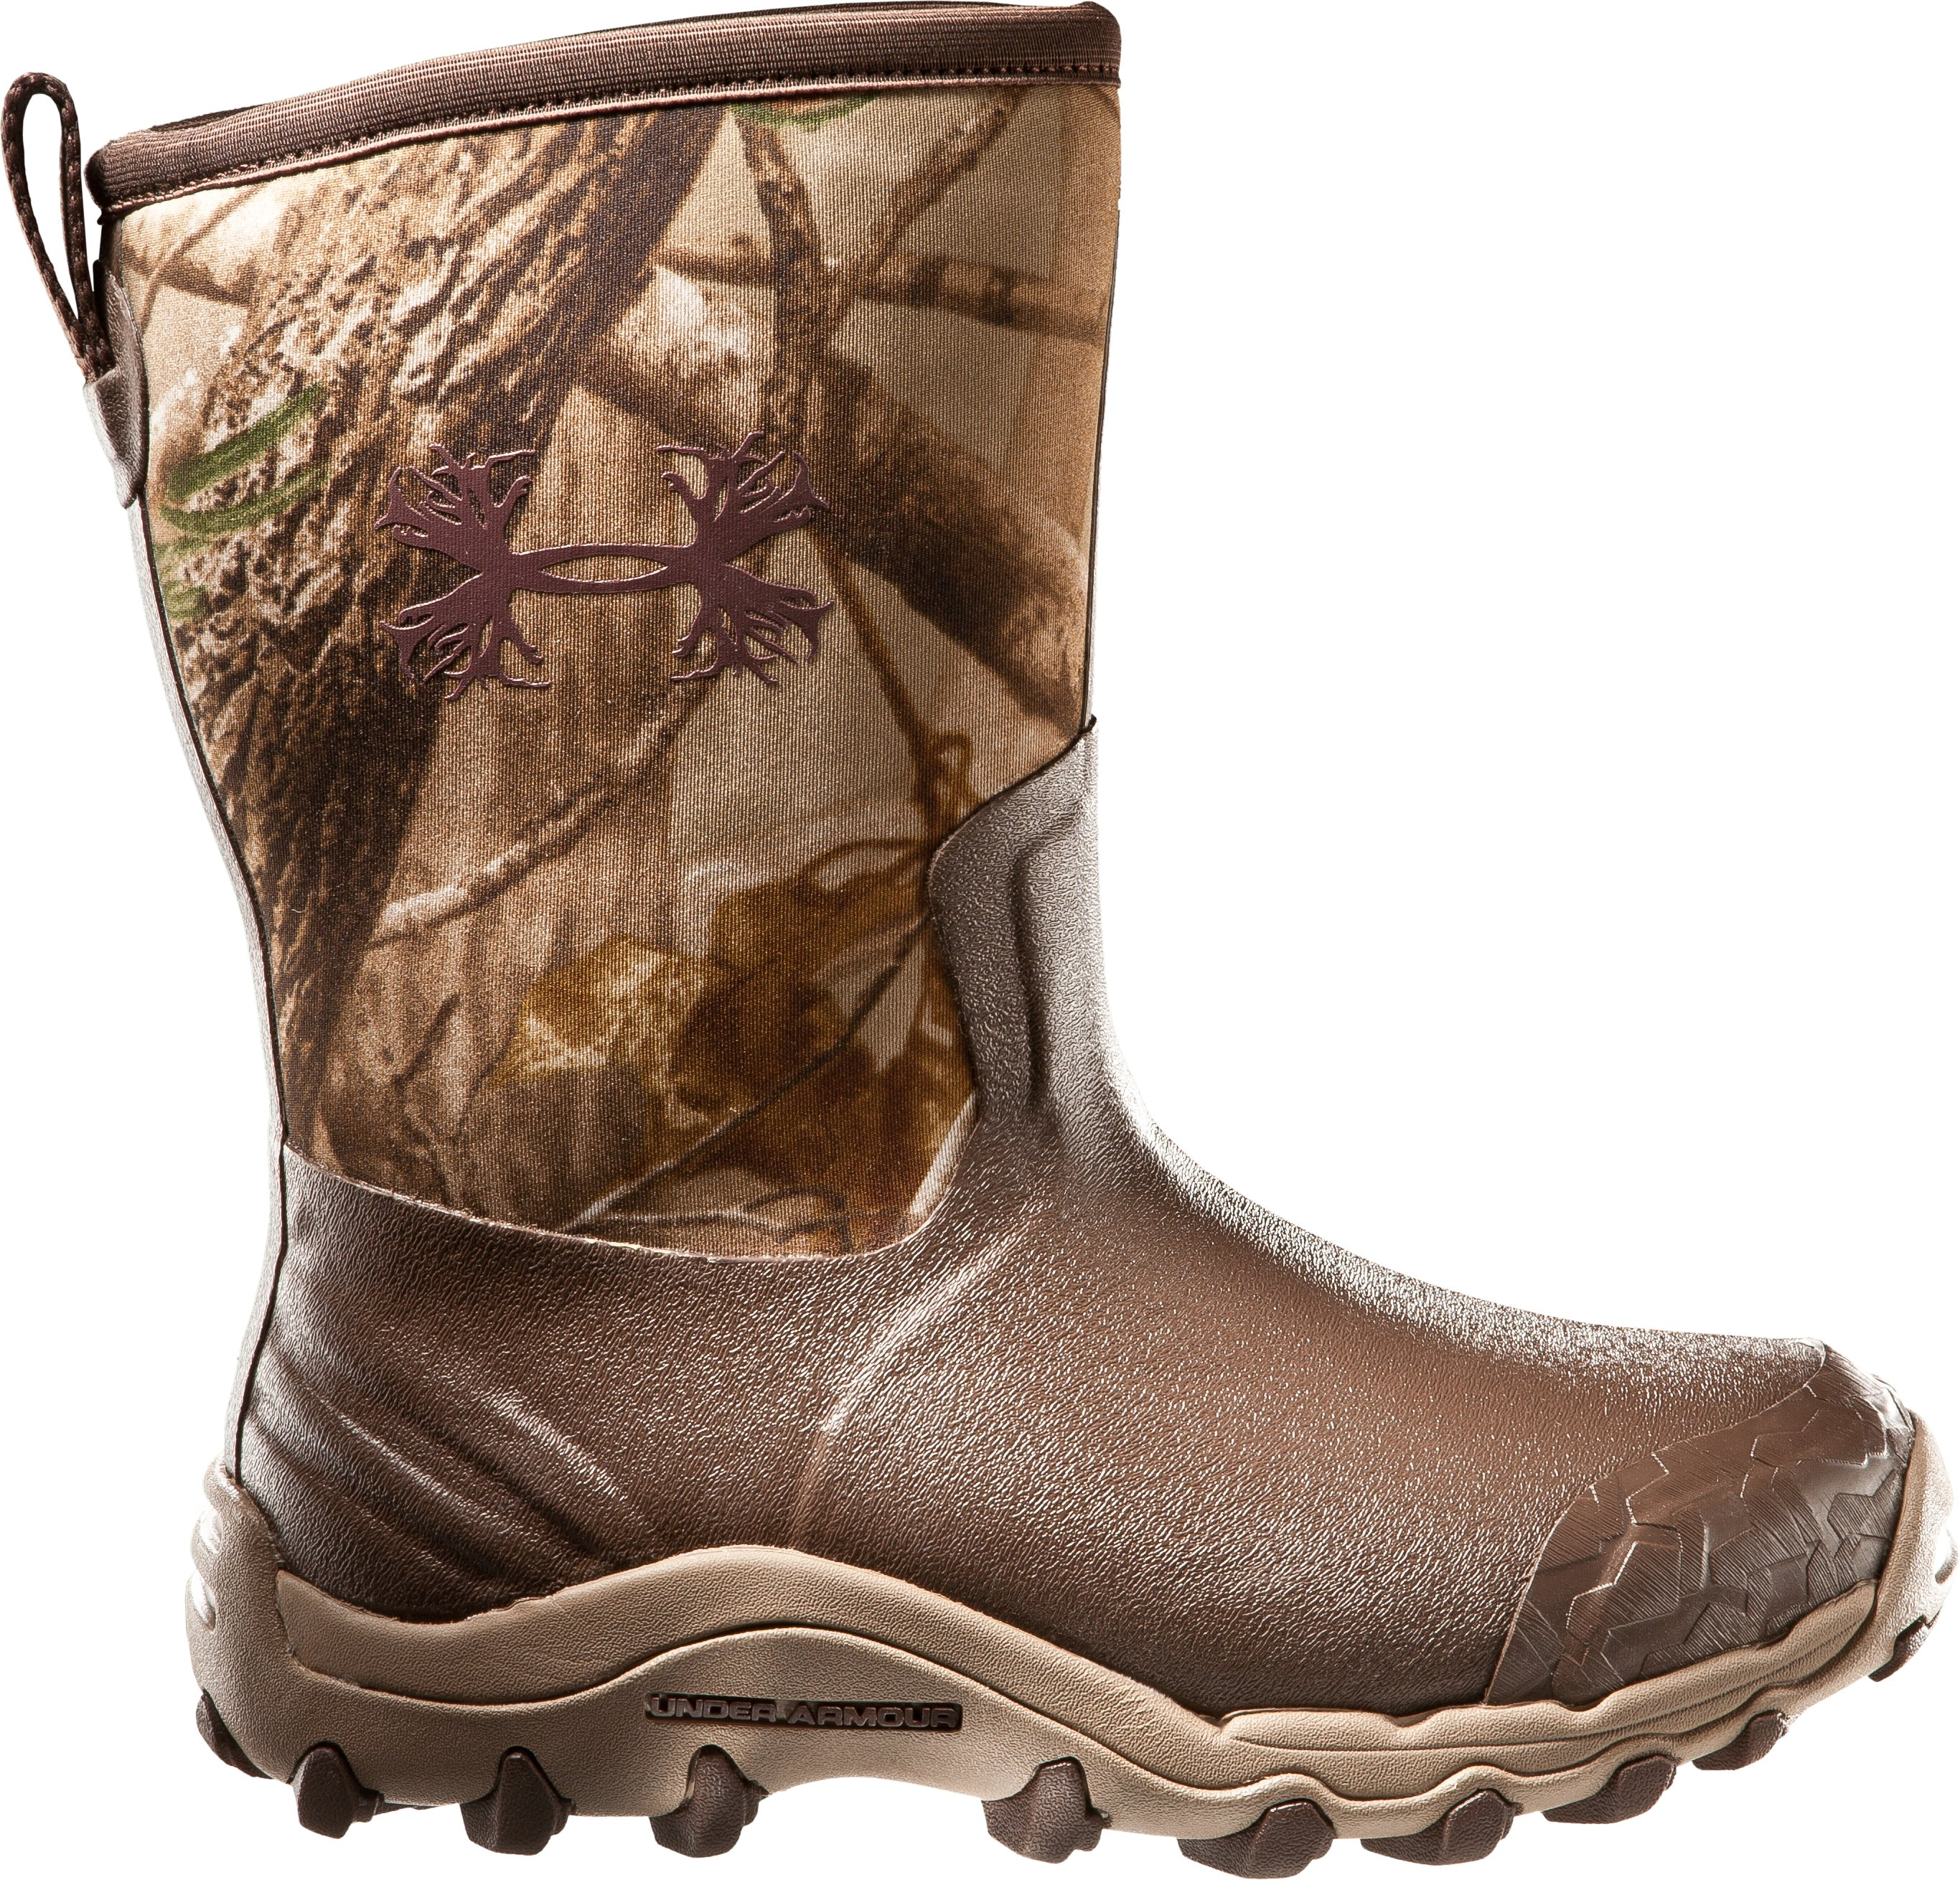 Men's UA H.A.W. Shorty Hunting Boots, Realtree AP, zoomed image